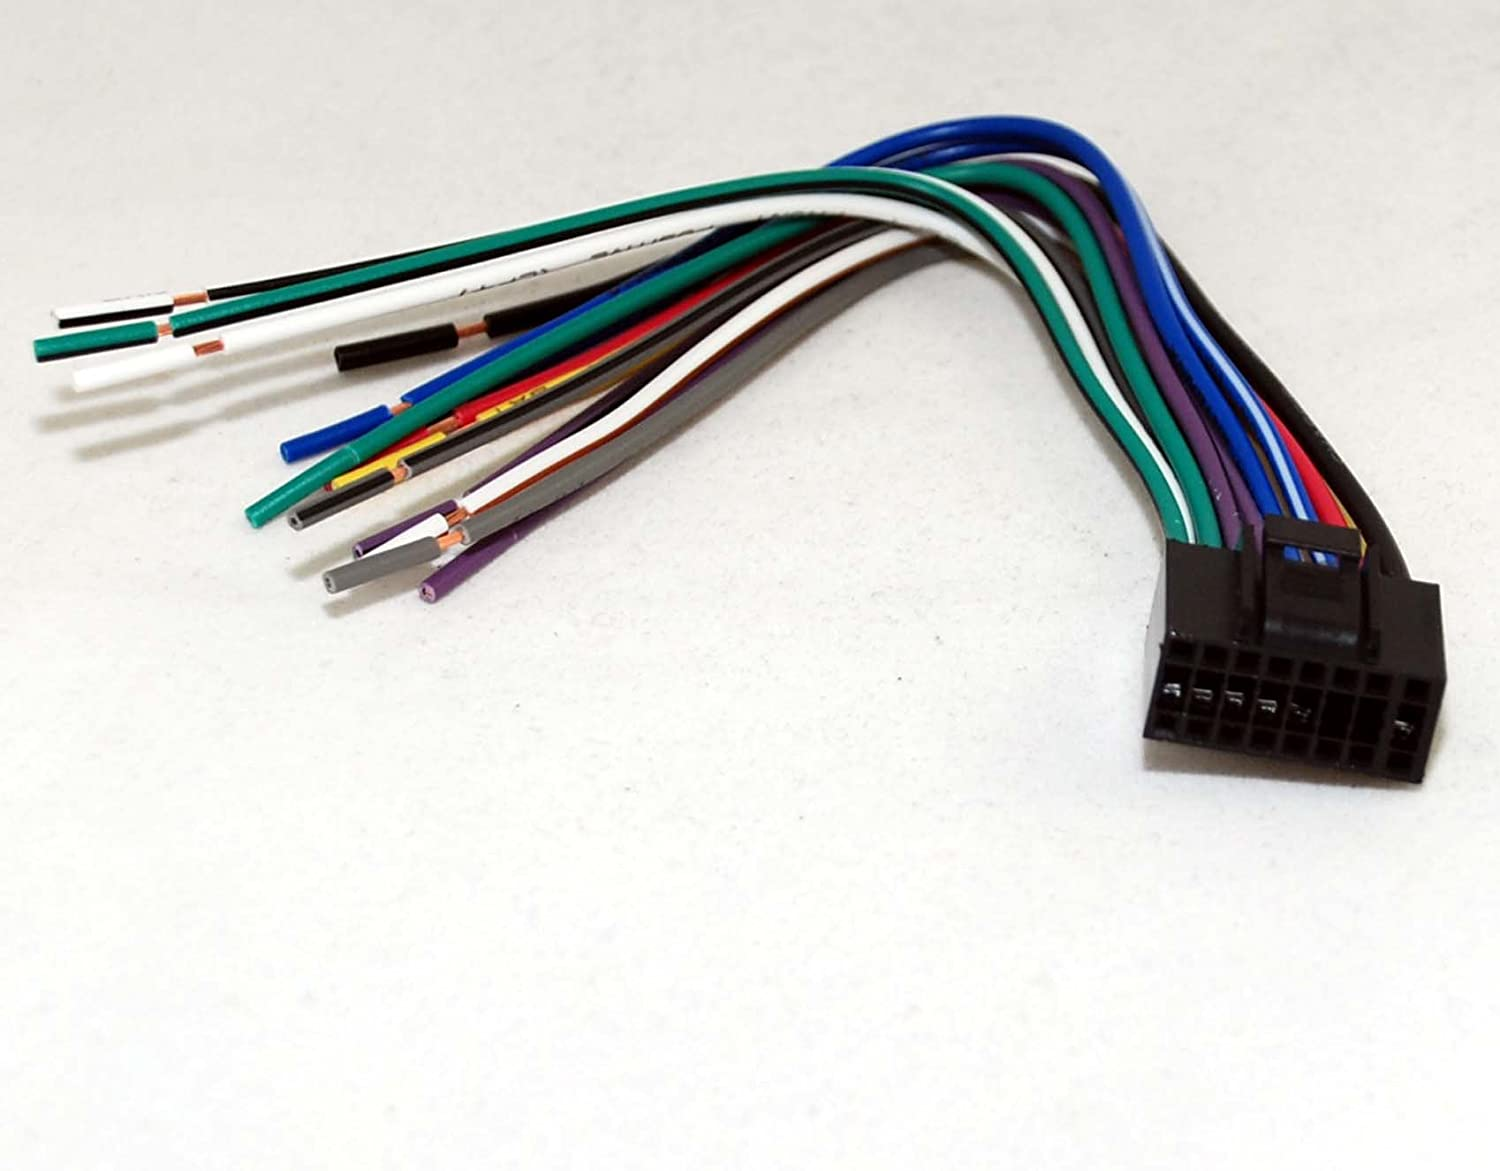 61Rzeblbo0L._SL1500_ amazon com xtenzi harness for dual 16 pin wire harness xdvd8181 car dual xdm270 wiring harness at readyjetset.co